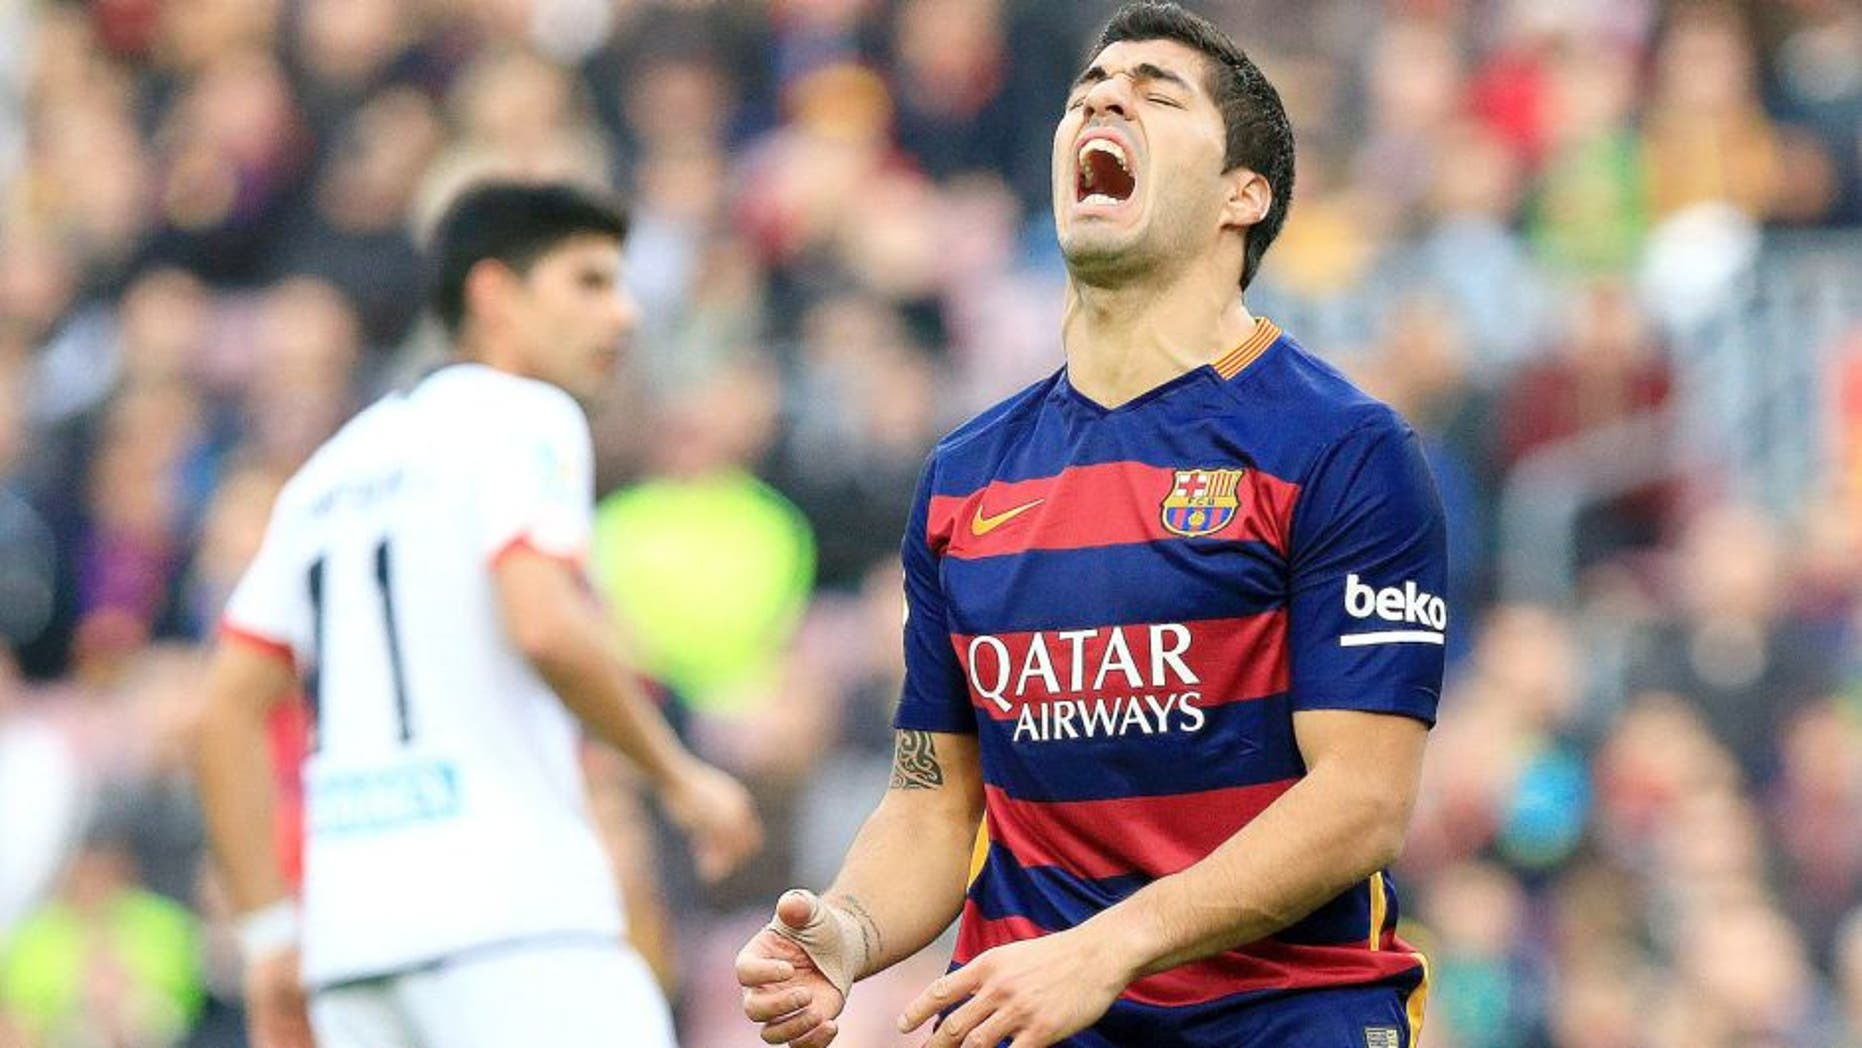 FC Barcelona's Uruguayan forward Luis Suarez shouts during the Spanish league football match FC Barcelona vs RC Deportivo La Coruna at the Camp Nou stadium in Barcelona on December 12, 2015. AFP PHOTO / PAU BARRENA / AFP / PAU BARRENA (Photo credit should read PAU BARRENA/AFP/Getty Images)